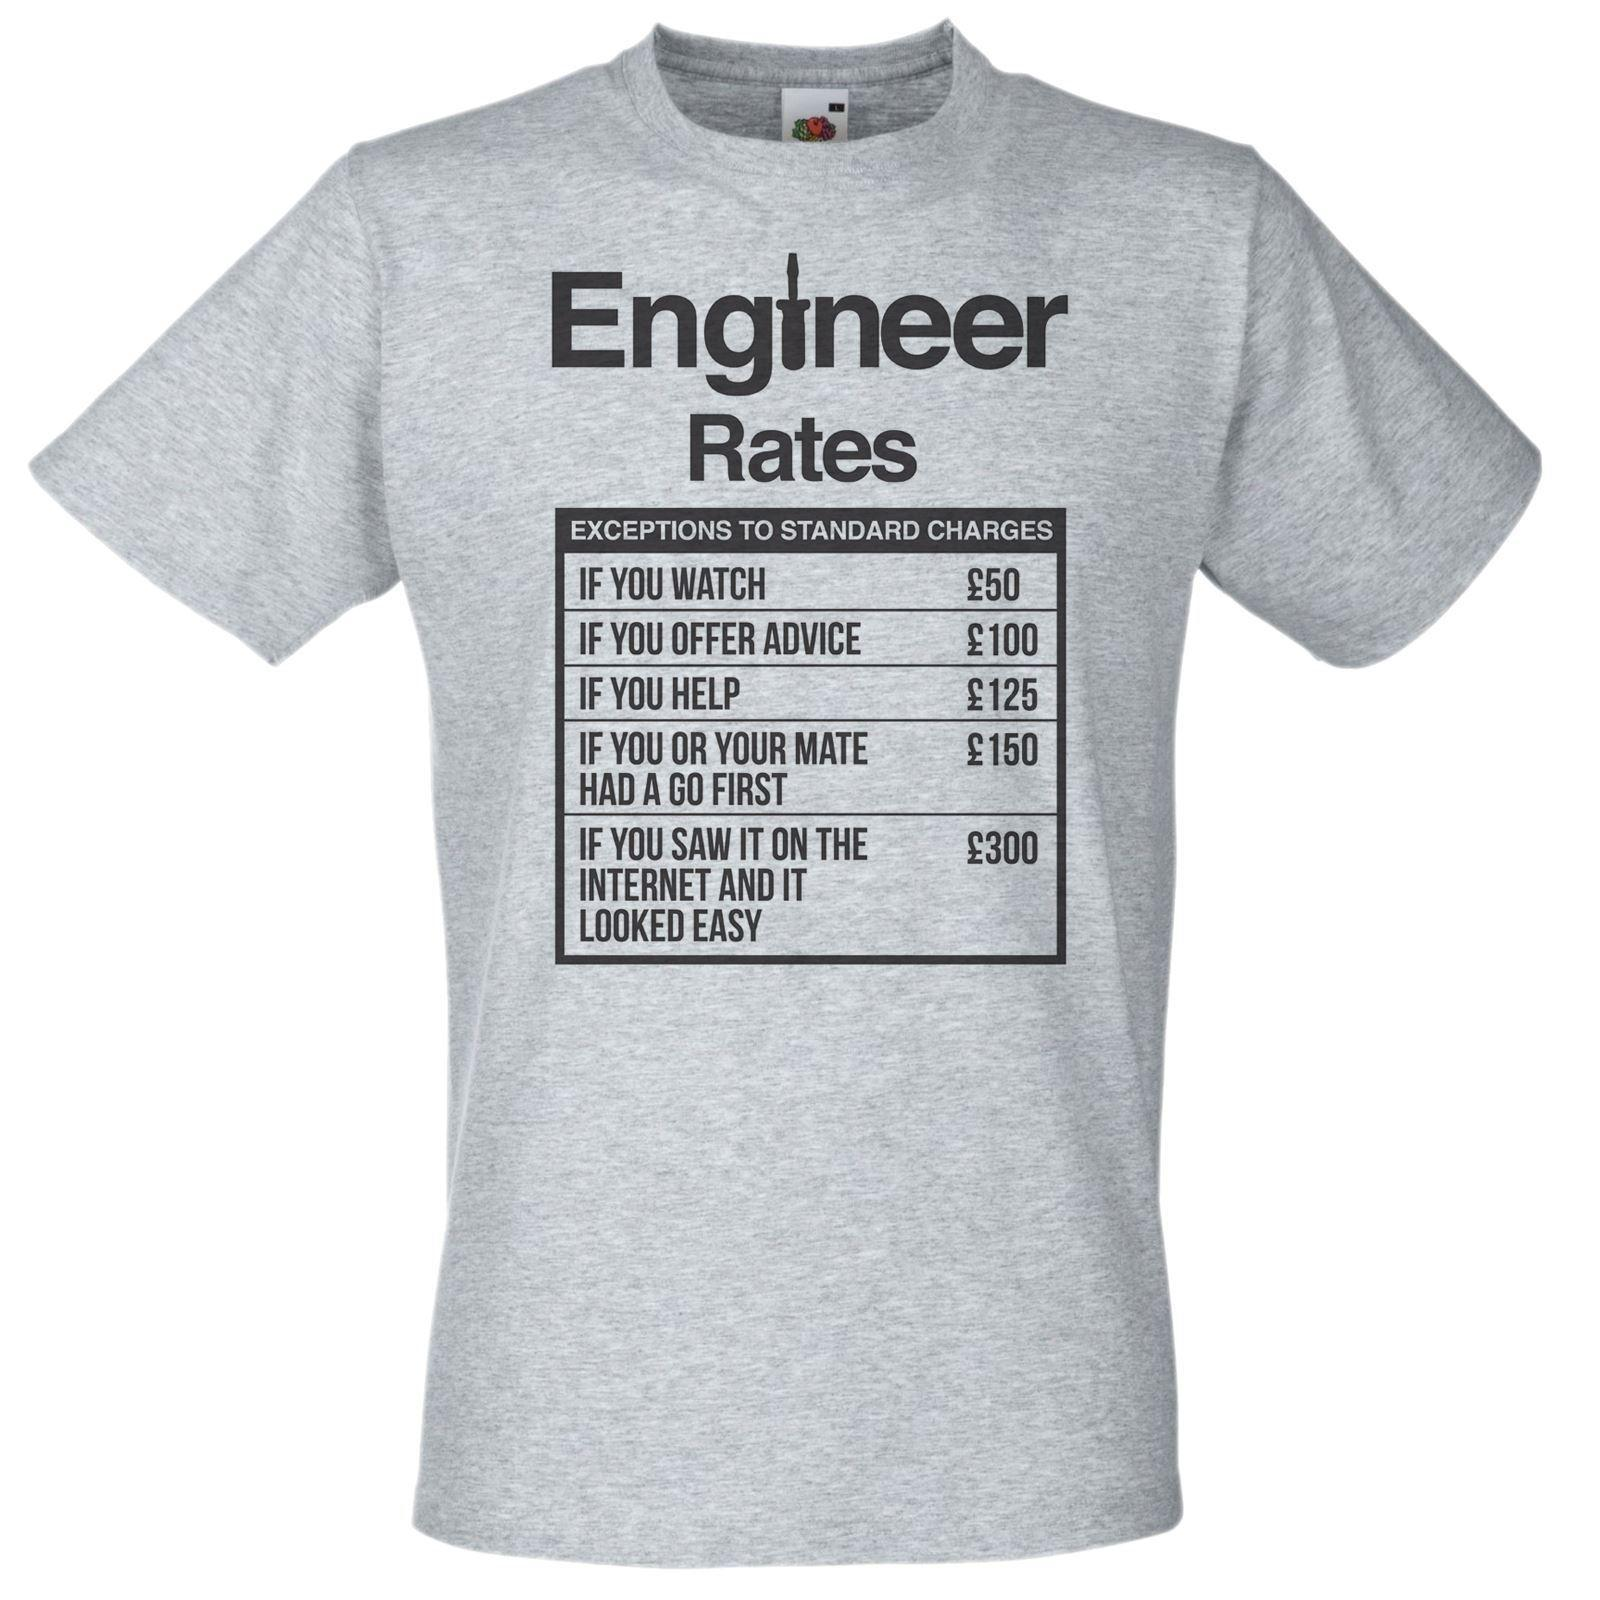 32d7cc662 Mens Grey Engineer Rates T Shirt Engineer Student TShirt Funny Novelty Gift  Idea Funny Unisex Cool T Shirts Online Funny T Shirts Online From  Clothing_deals ...